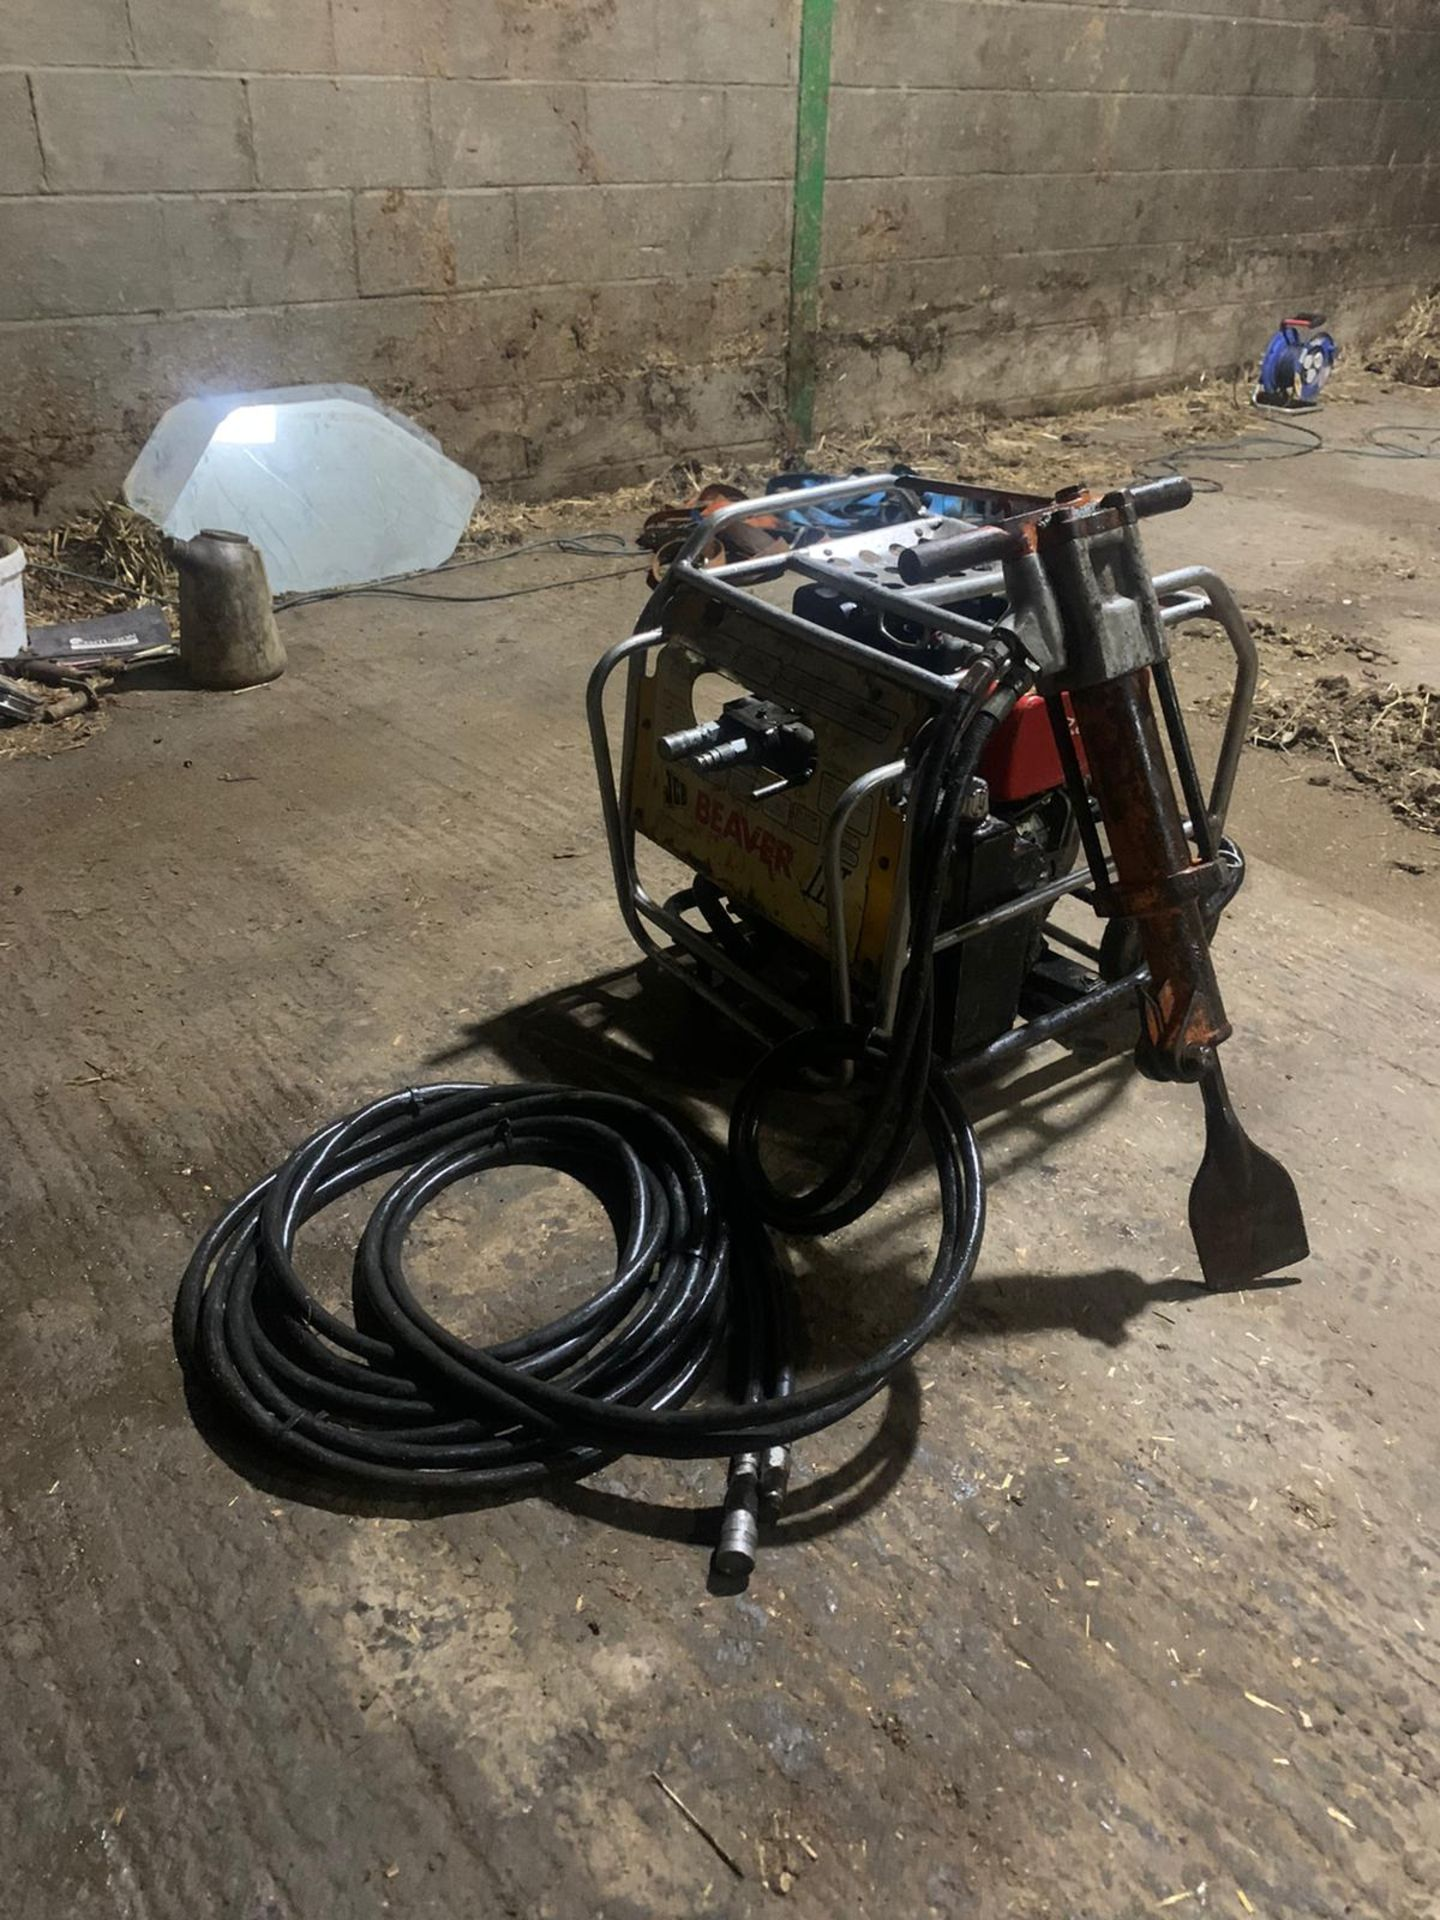 JCB Diesel Hydraulic Beaver Pack Yanmar Diesel L70 Engine Easy To Move Around Pipes Are Like New - Image 6 of 6